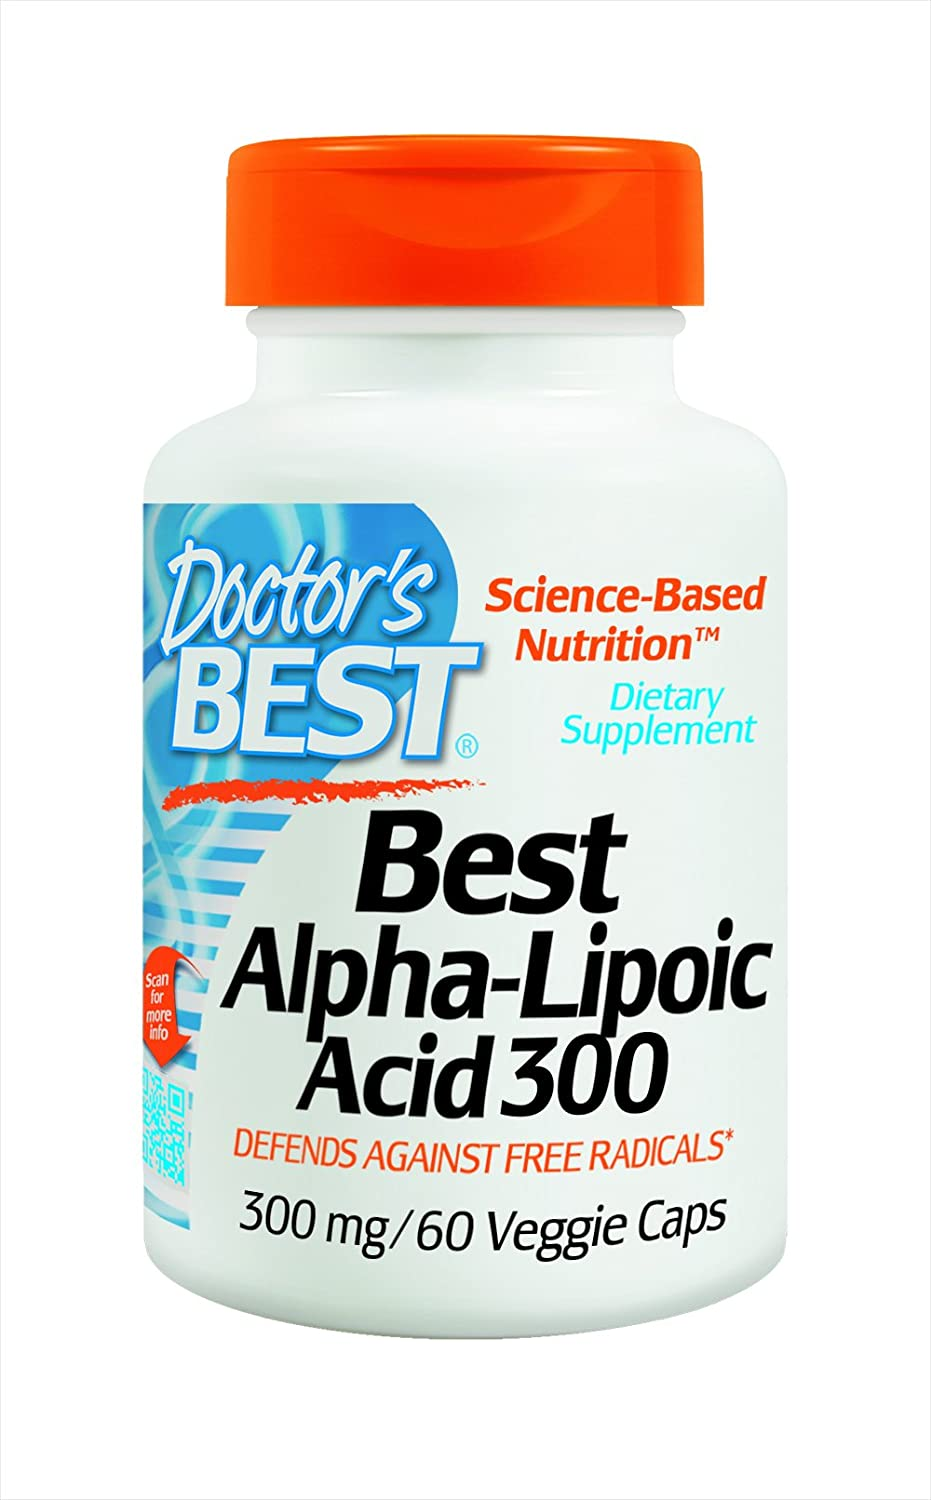 Doctor's Best Alpha-Lipoic Challenge the lowest price of Japan Acid Supplement mg Max 41% OFF 60 300 Count